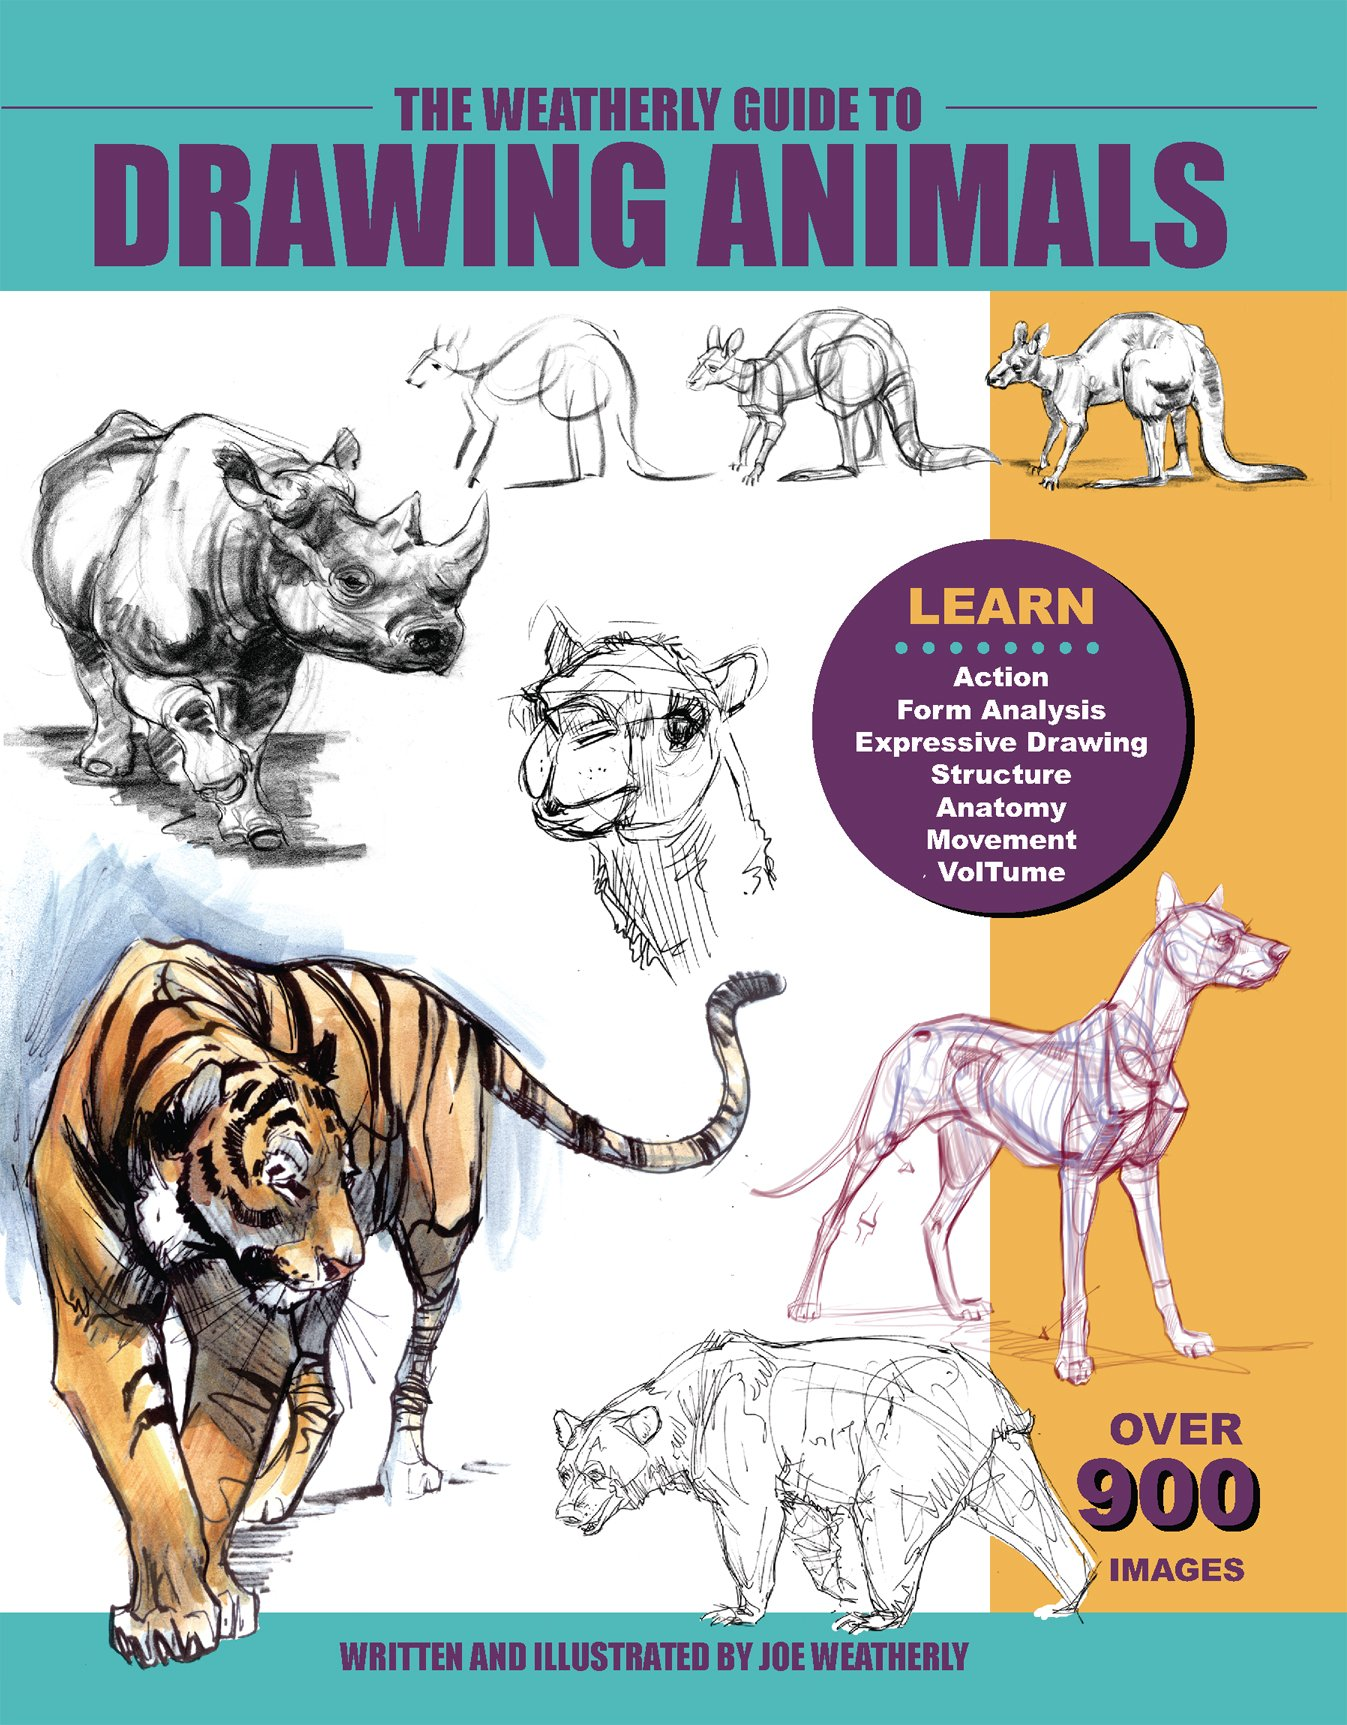 1347x1725 The Weatherly Guide To Drawing Animals Joe